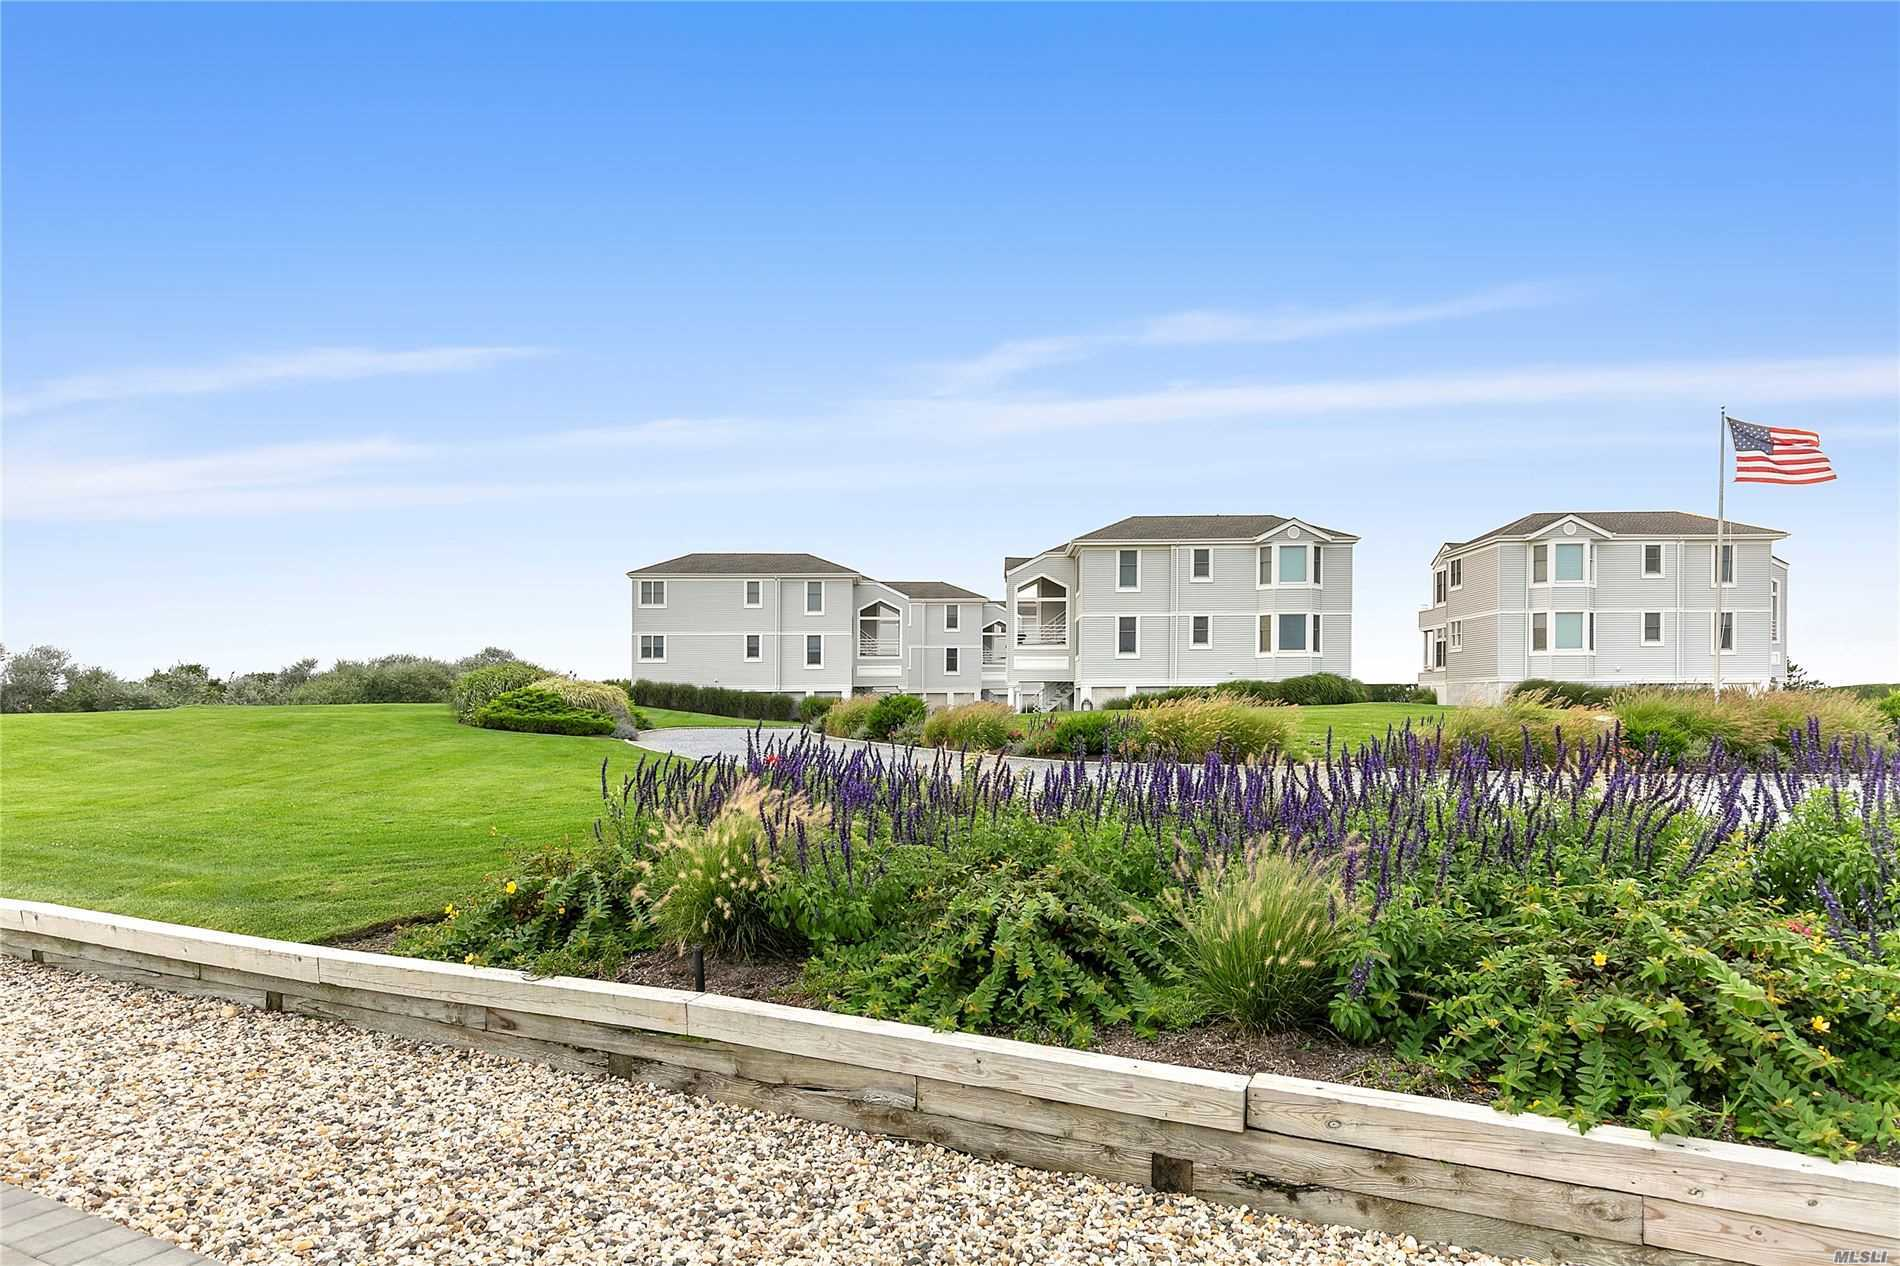 Set On 4.5 Acres Of Manicured Land In Westhampton's Highly Desired Hampton Court And Marina, This 3 Bed, 2.5 Bath Unit Features Bay Views From The Great Room, Kitchen, And Deck. Included With The Unit Is A Carport, Boat Slip, And Access To The Ocean. The Complex, Consisting Of Only 14 Units, Also Offers Shared Har-Tru Tennis Courts, Pickle Ball Courts, A Heated, Gunite Bayside Pool, And A Completely Renovated Club House Replete With A Full Kitchen, Sitting Area, And Gym.